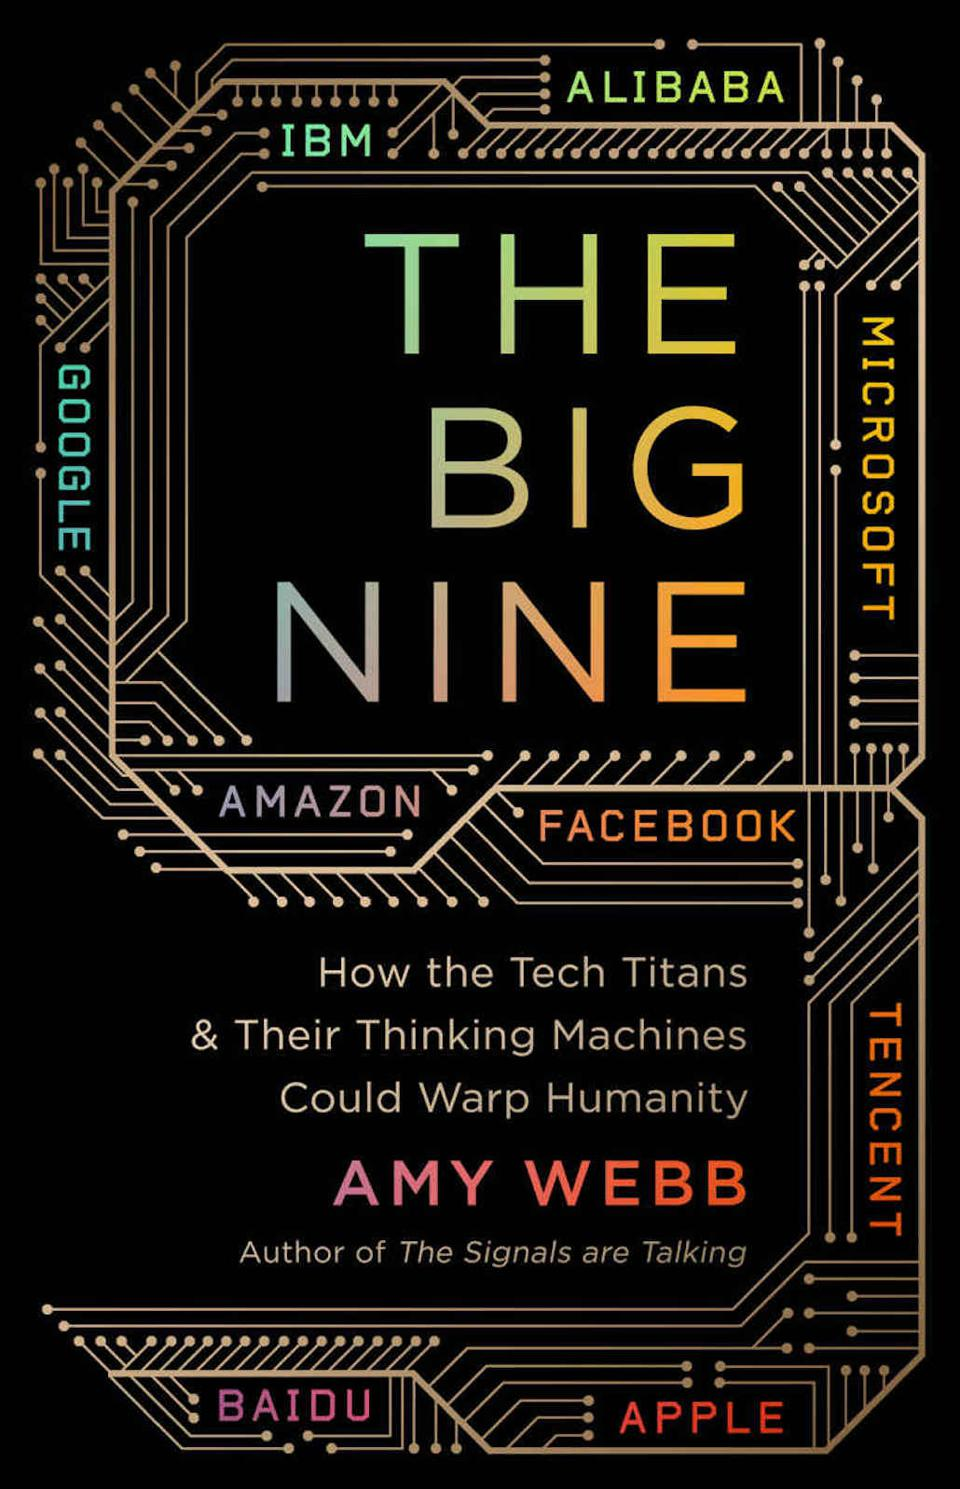 The Big Nine: How the Tech Titans & Their Thinking Machines Could Warp Humanity by Amy Webb